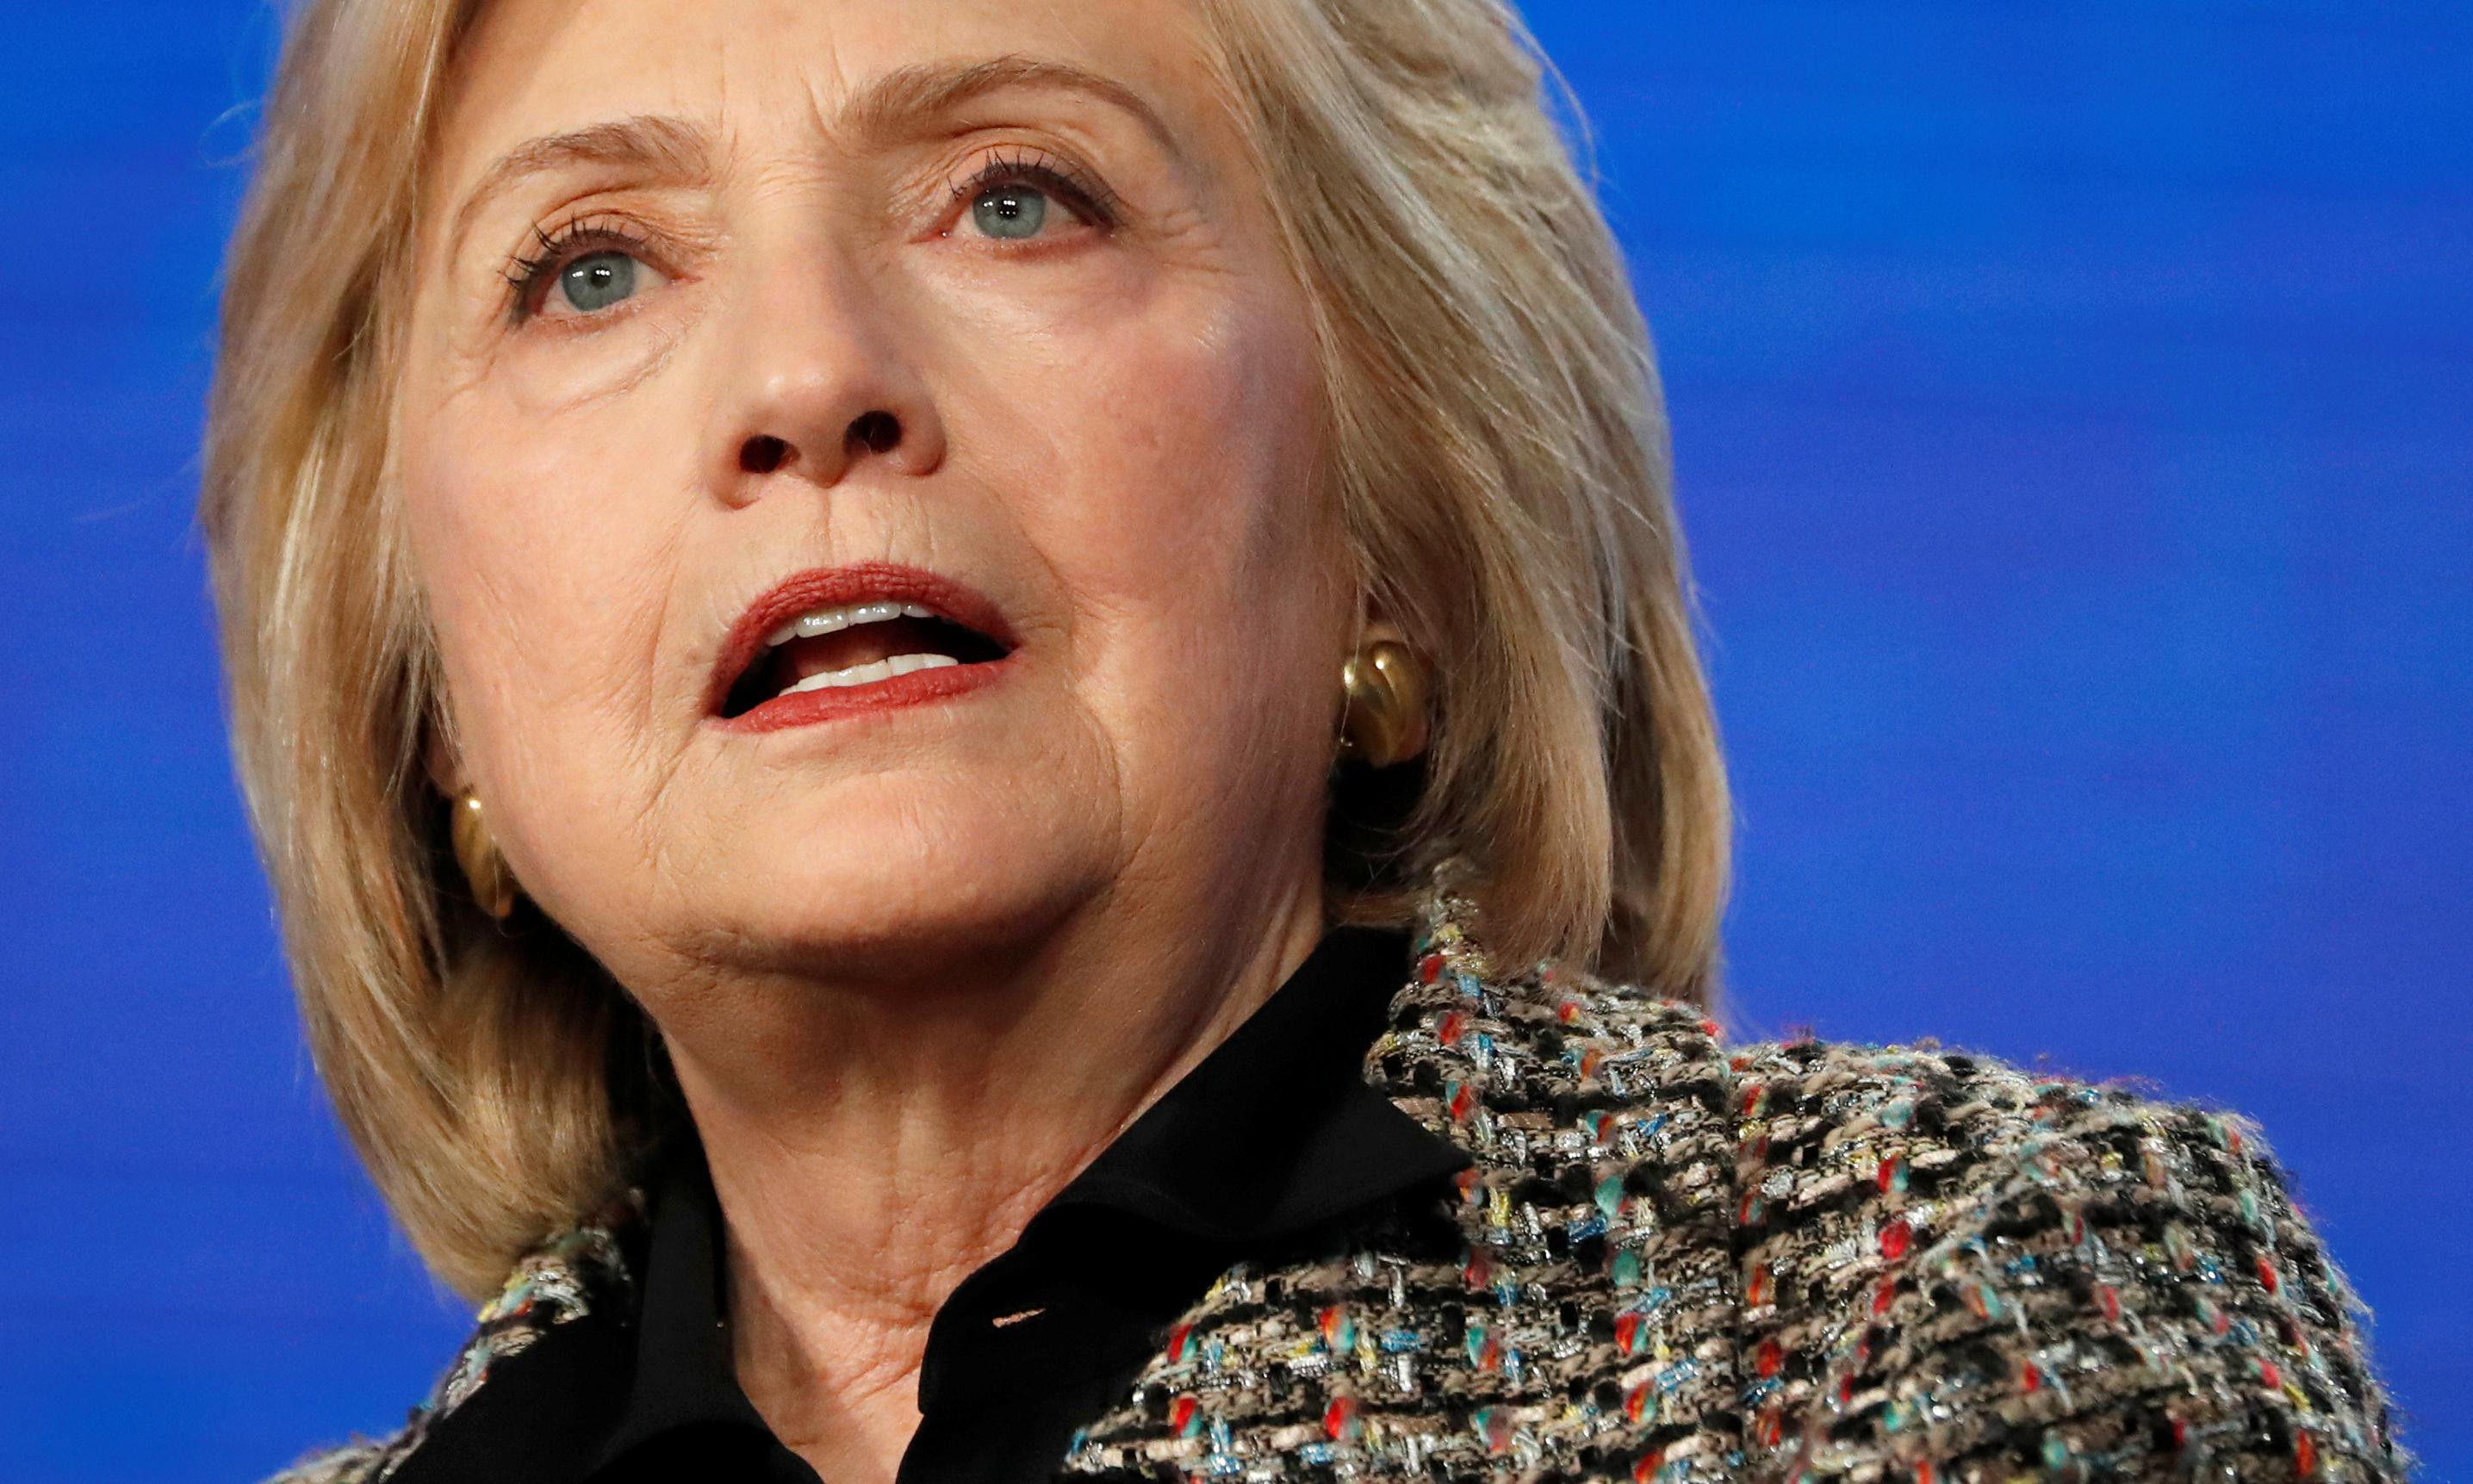 Hillary Clinton is done trying to be liked